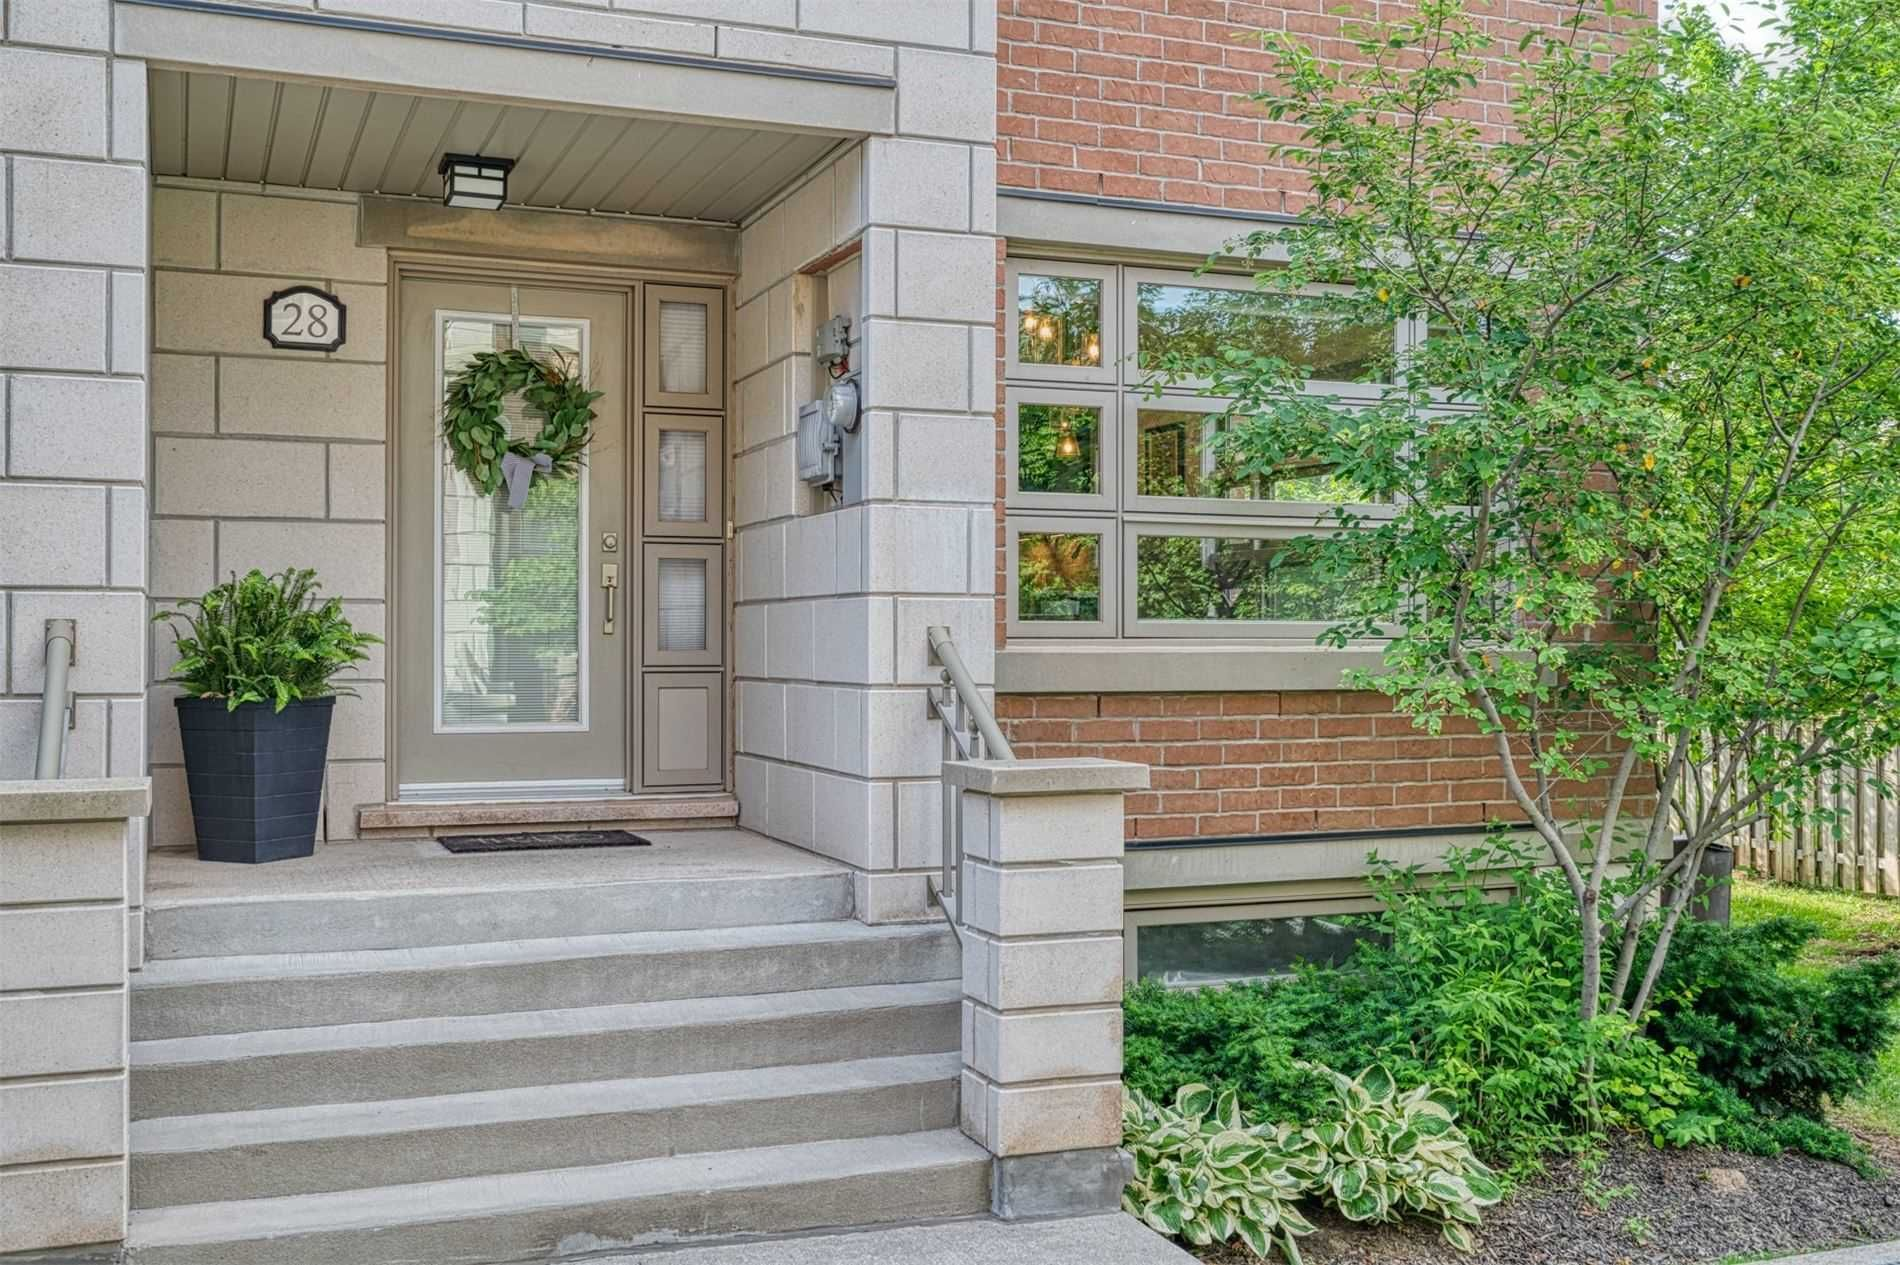 2460 Prince Michael Dr, unit #28 for sale in Toronto - image #2